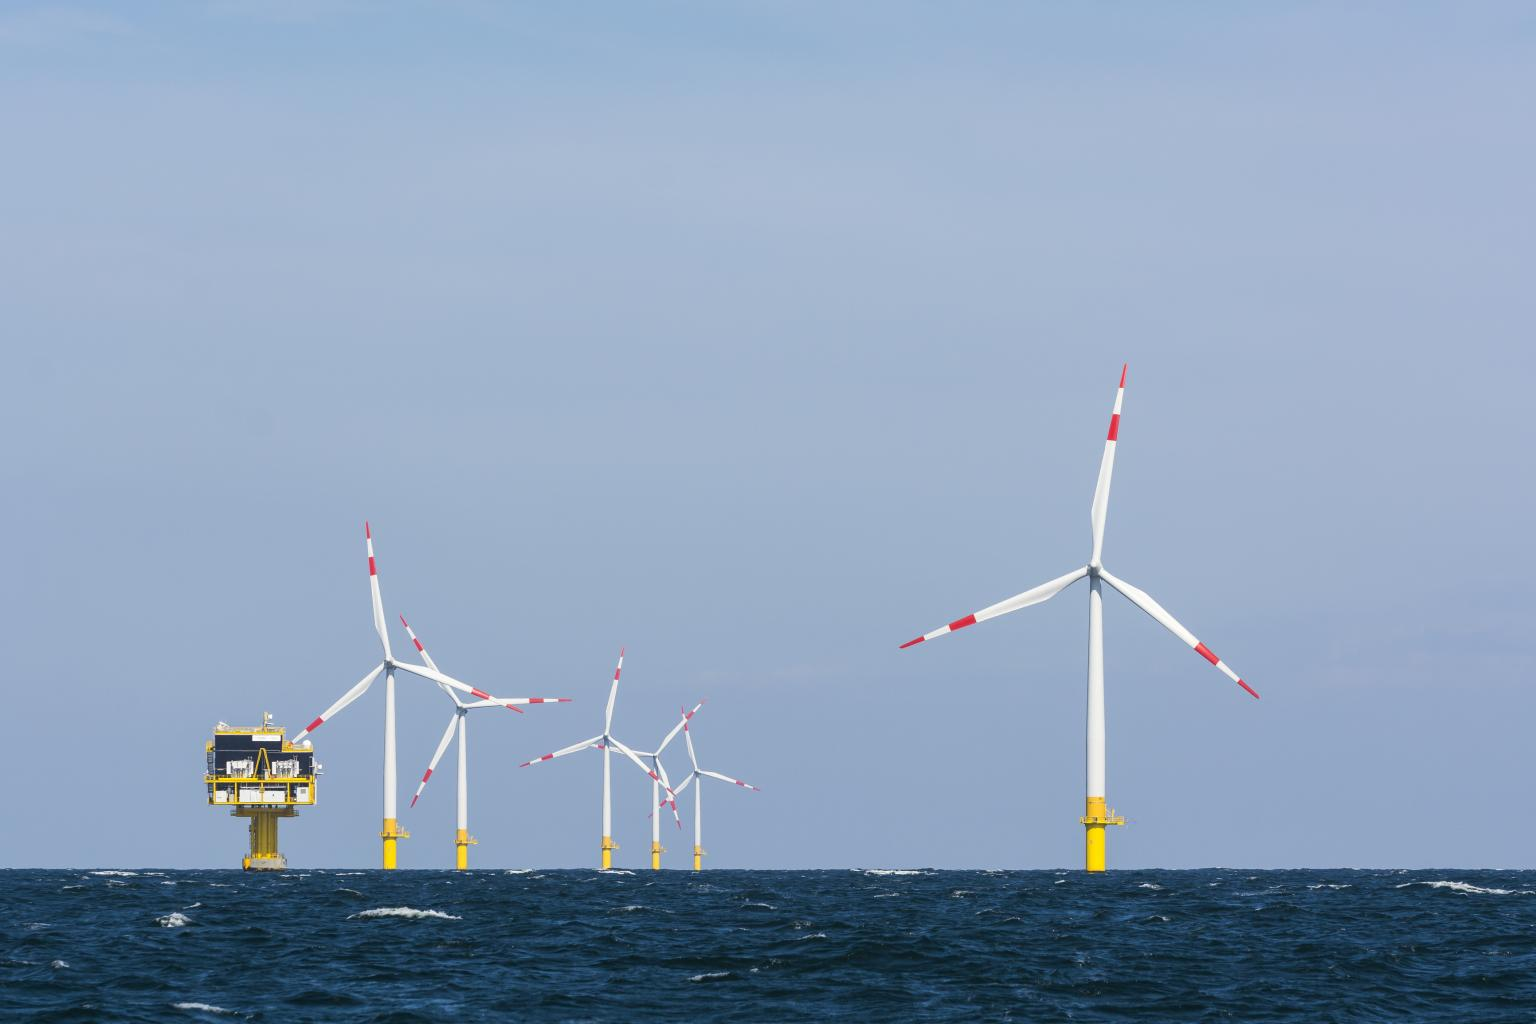 Blaze Solutions are improving safety at offshore wind farms